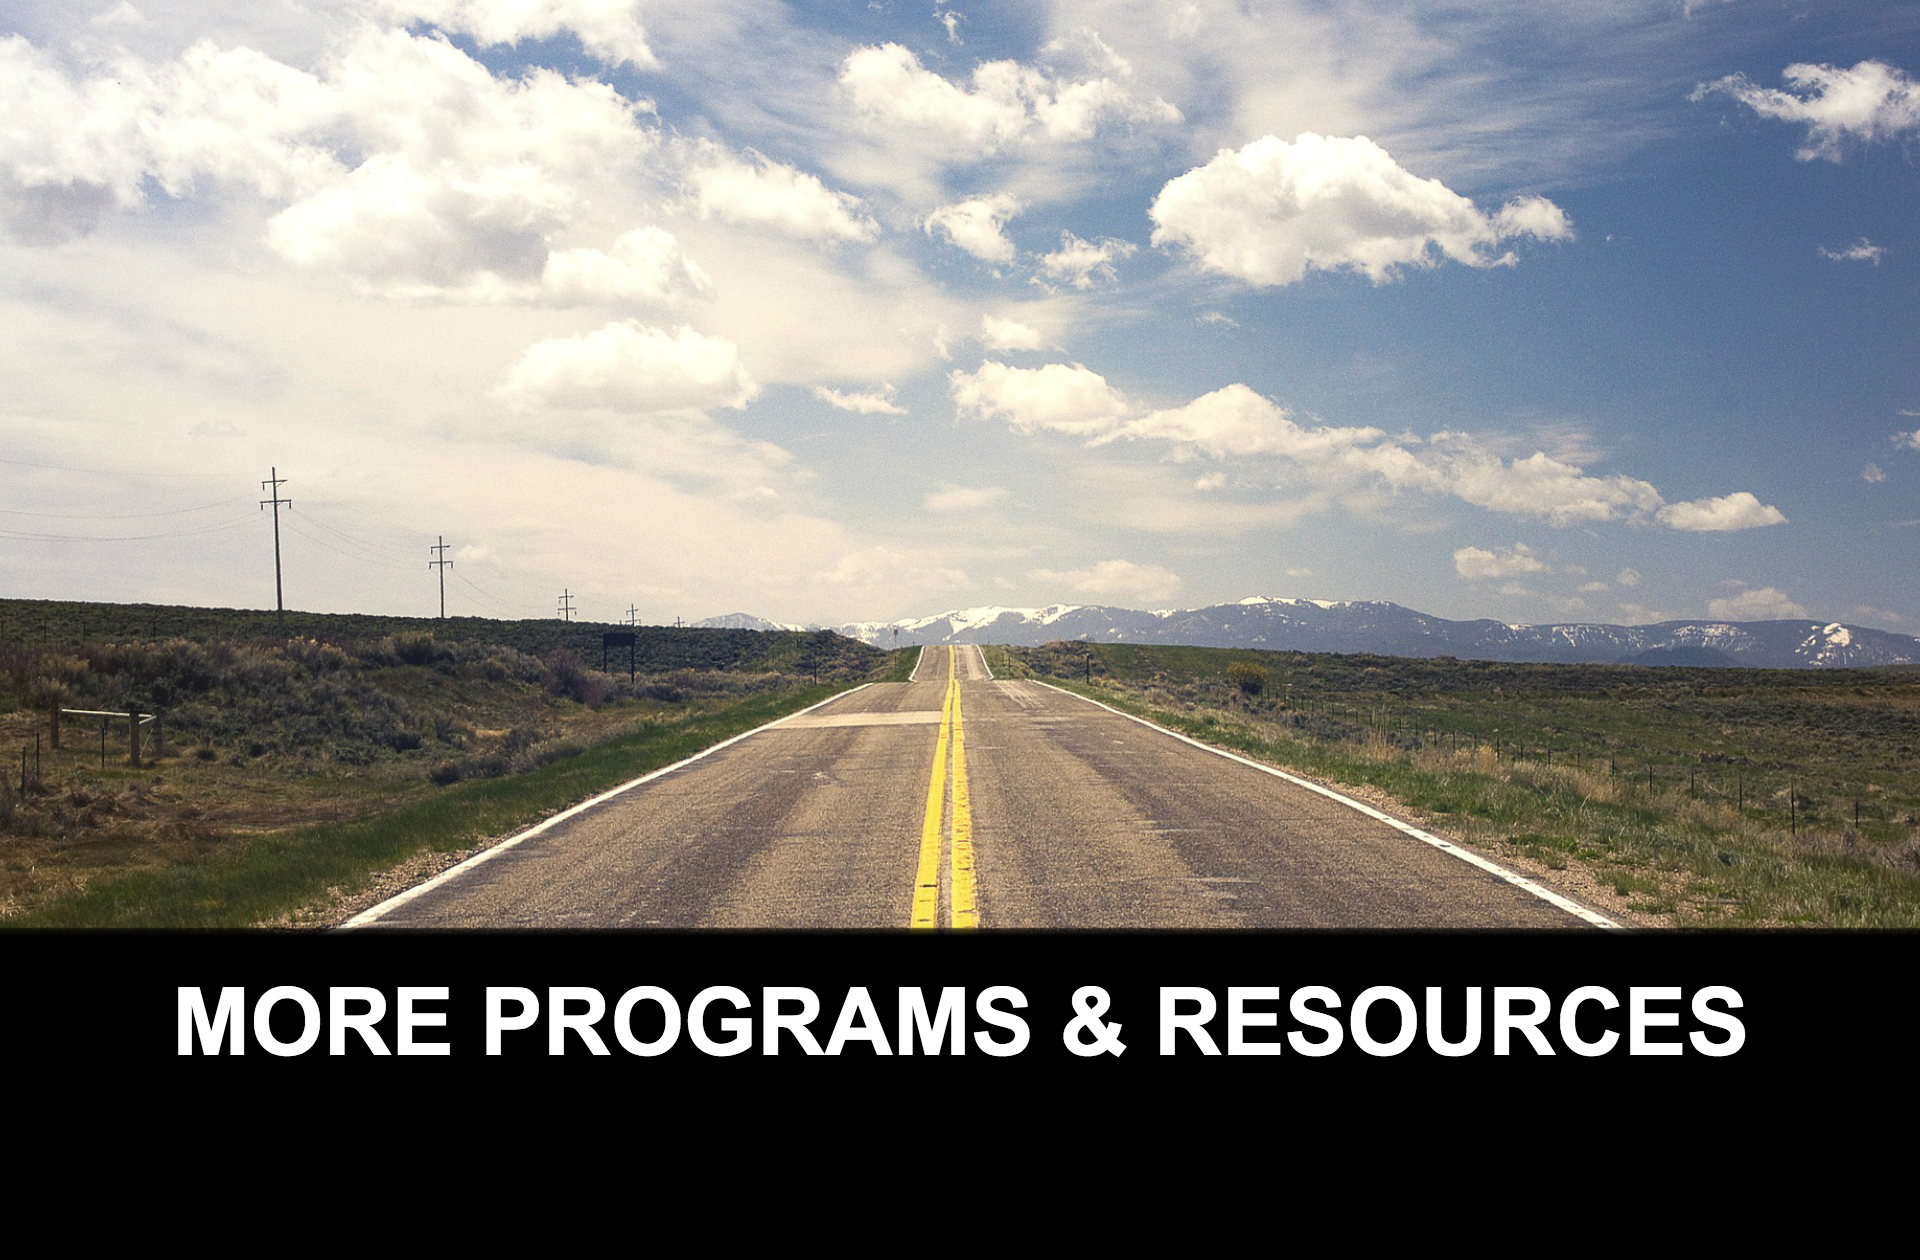 MORE PROGRAMS RESOURCES